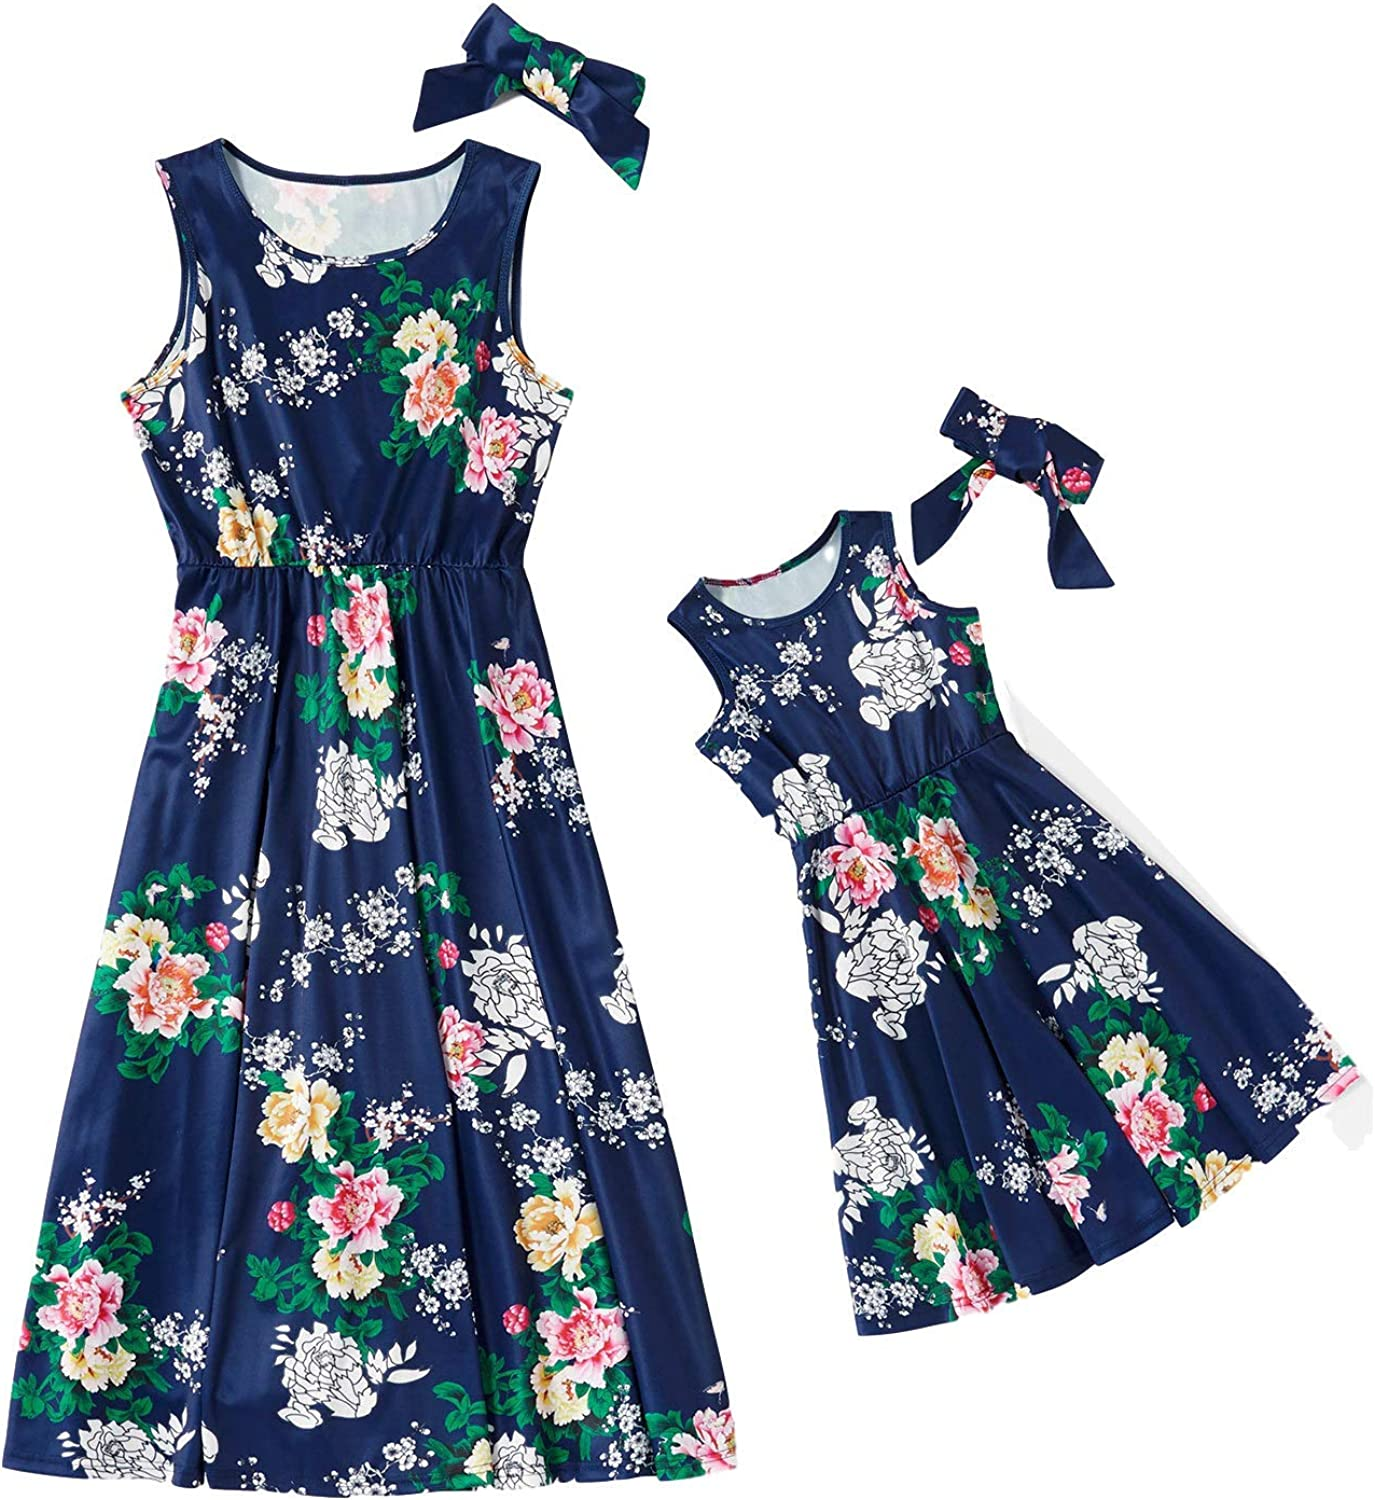 AICSOLL Mommy and Me Dress Matching Outfits Floral Printed Sleeveless Tank Casual Dress for Women Girls with Headbands